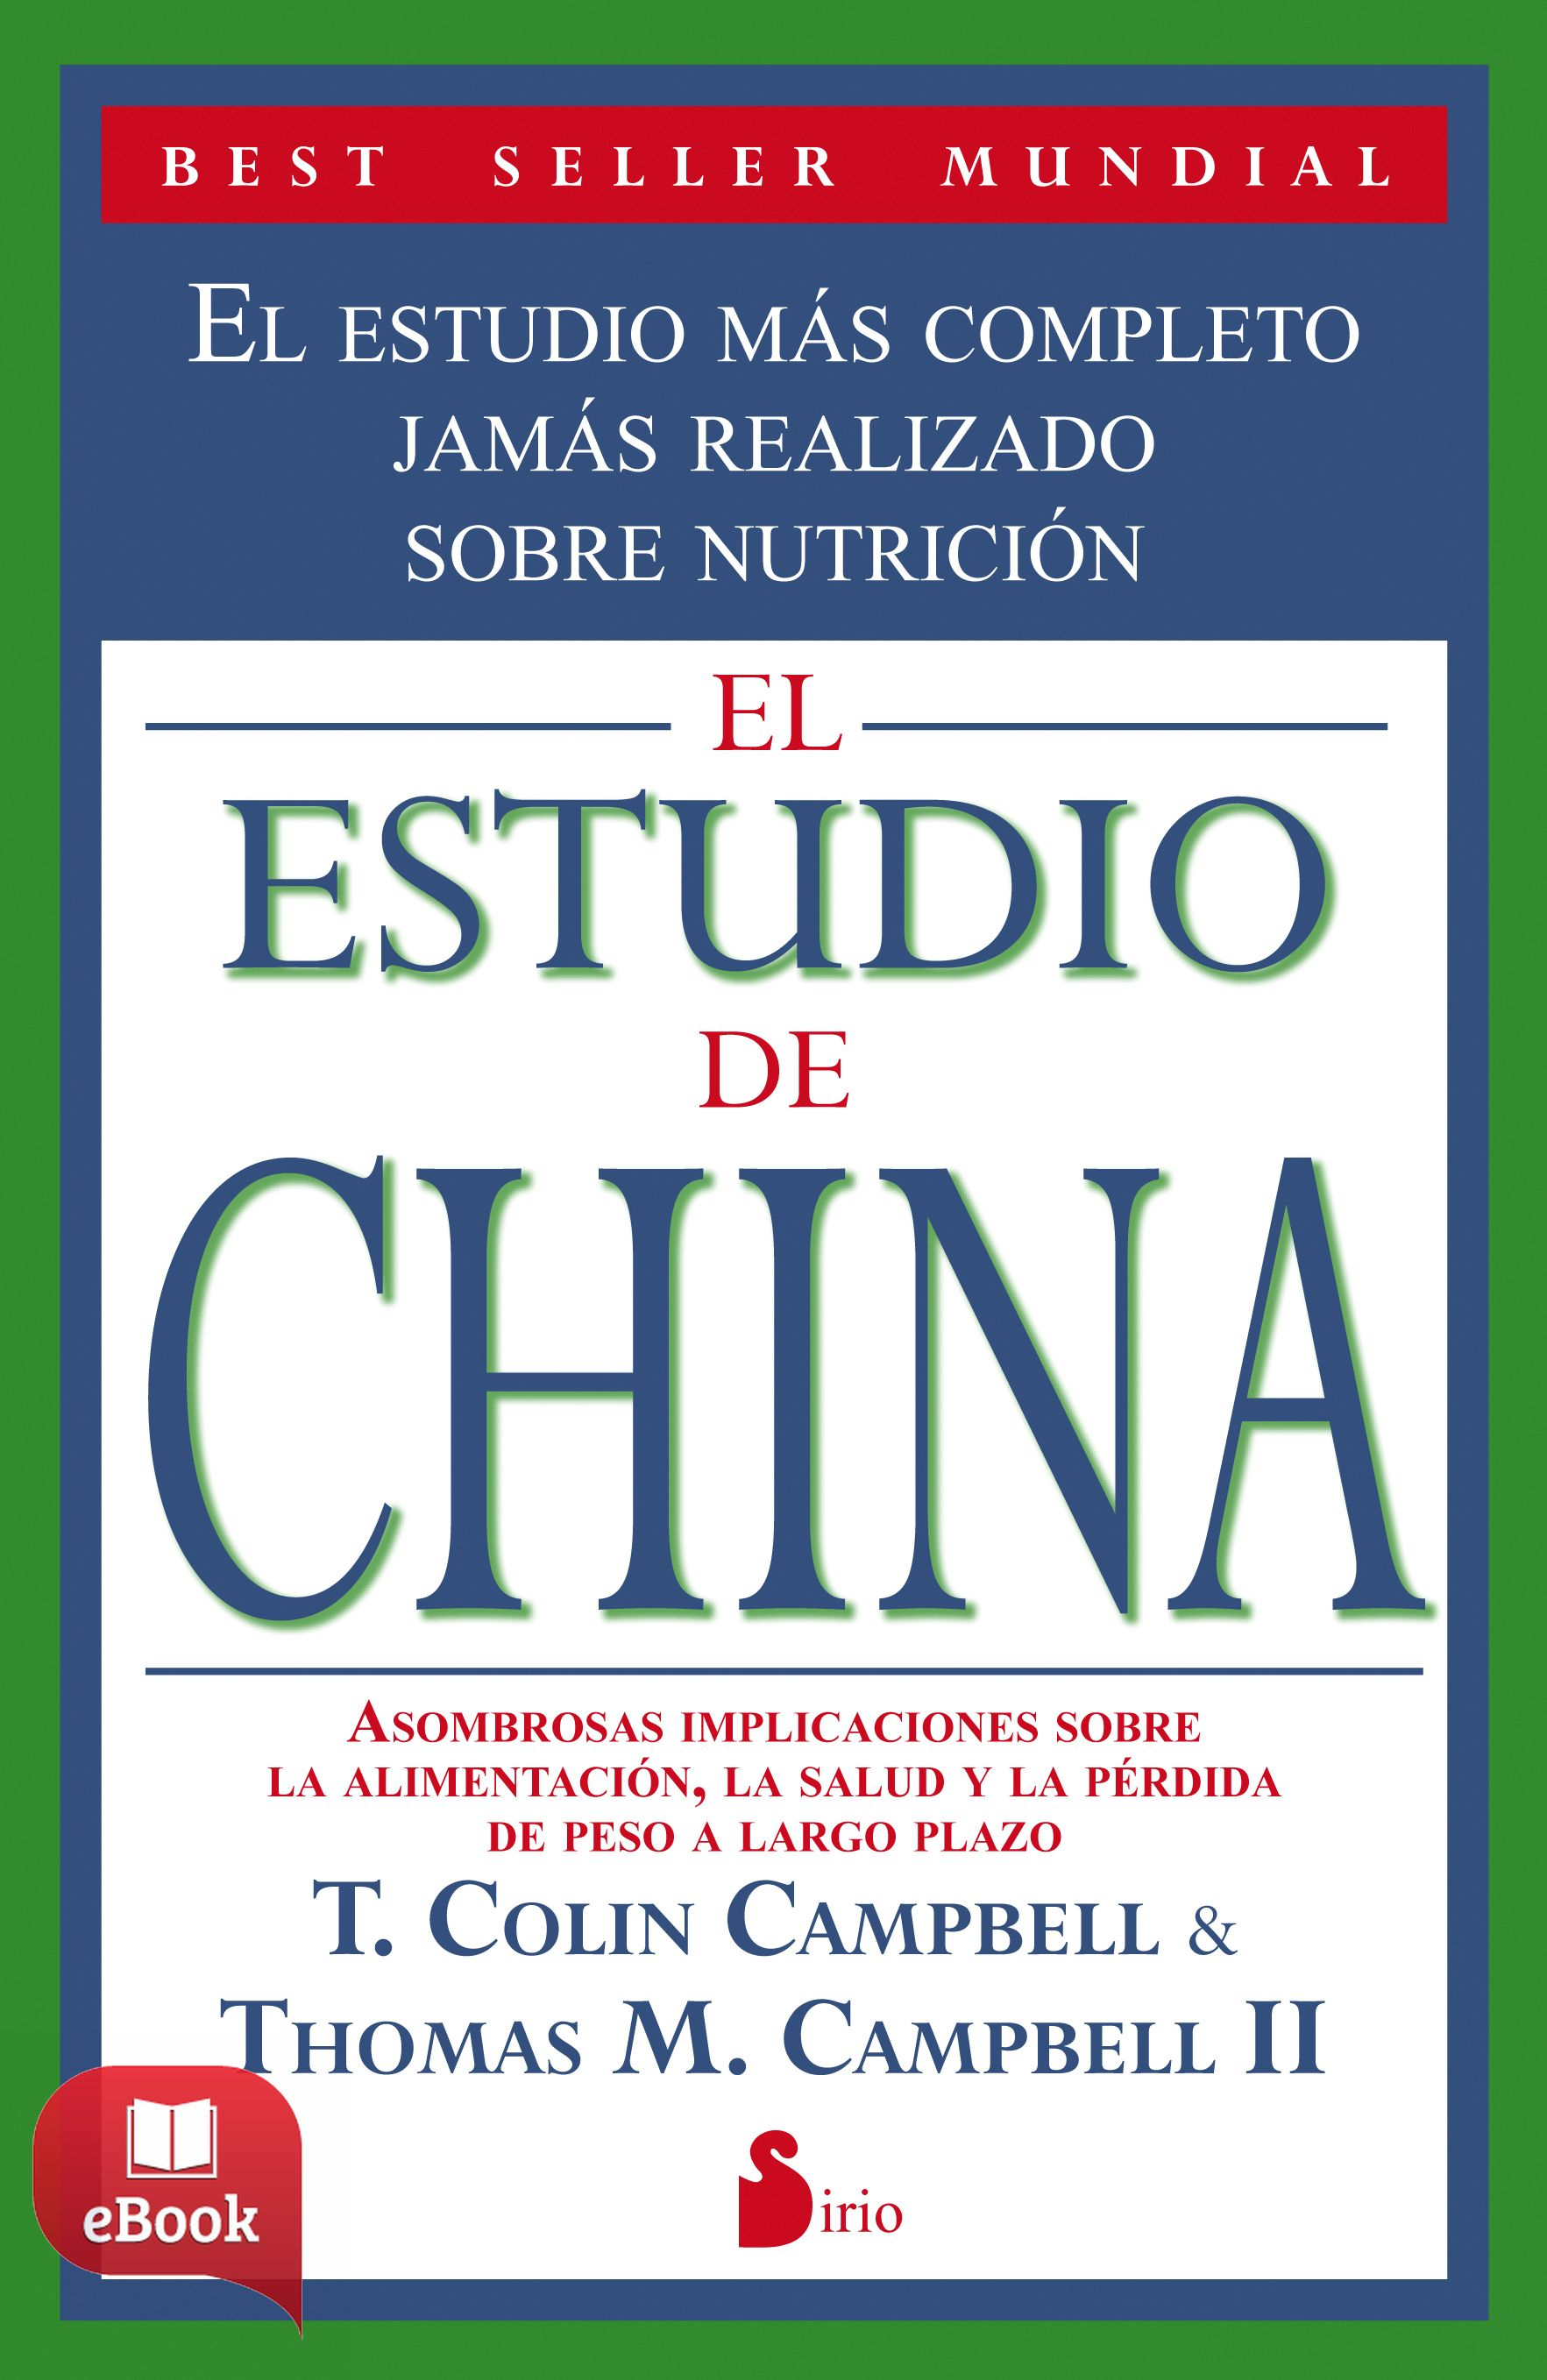 ESTUDIO DE CHINA, EL - EBOOK -